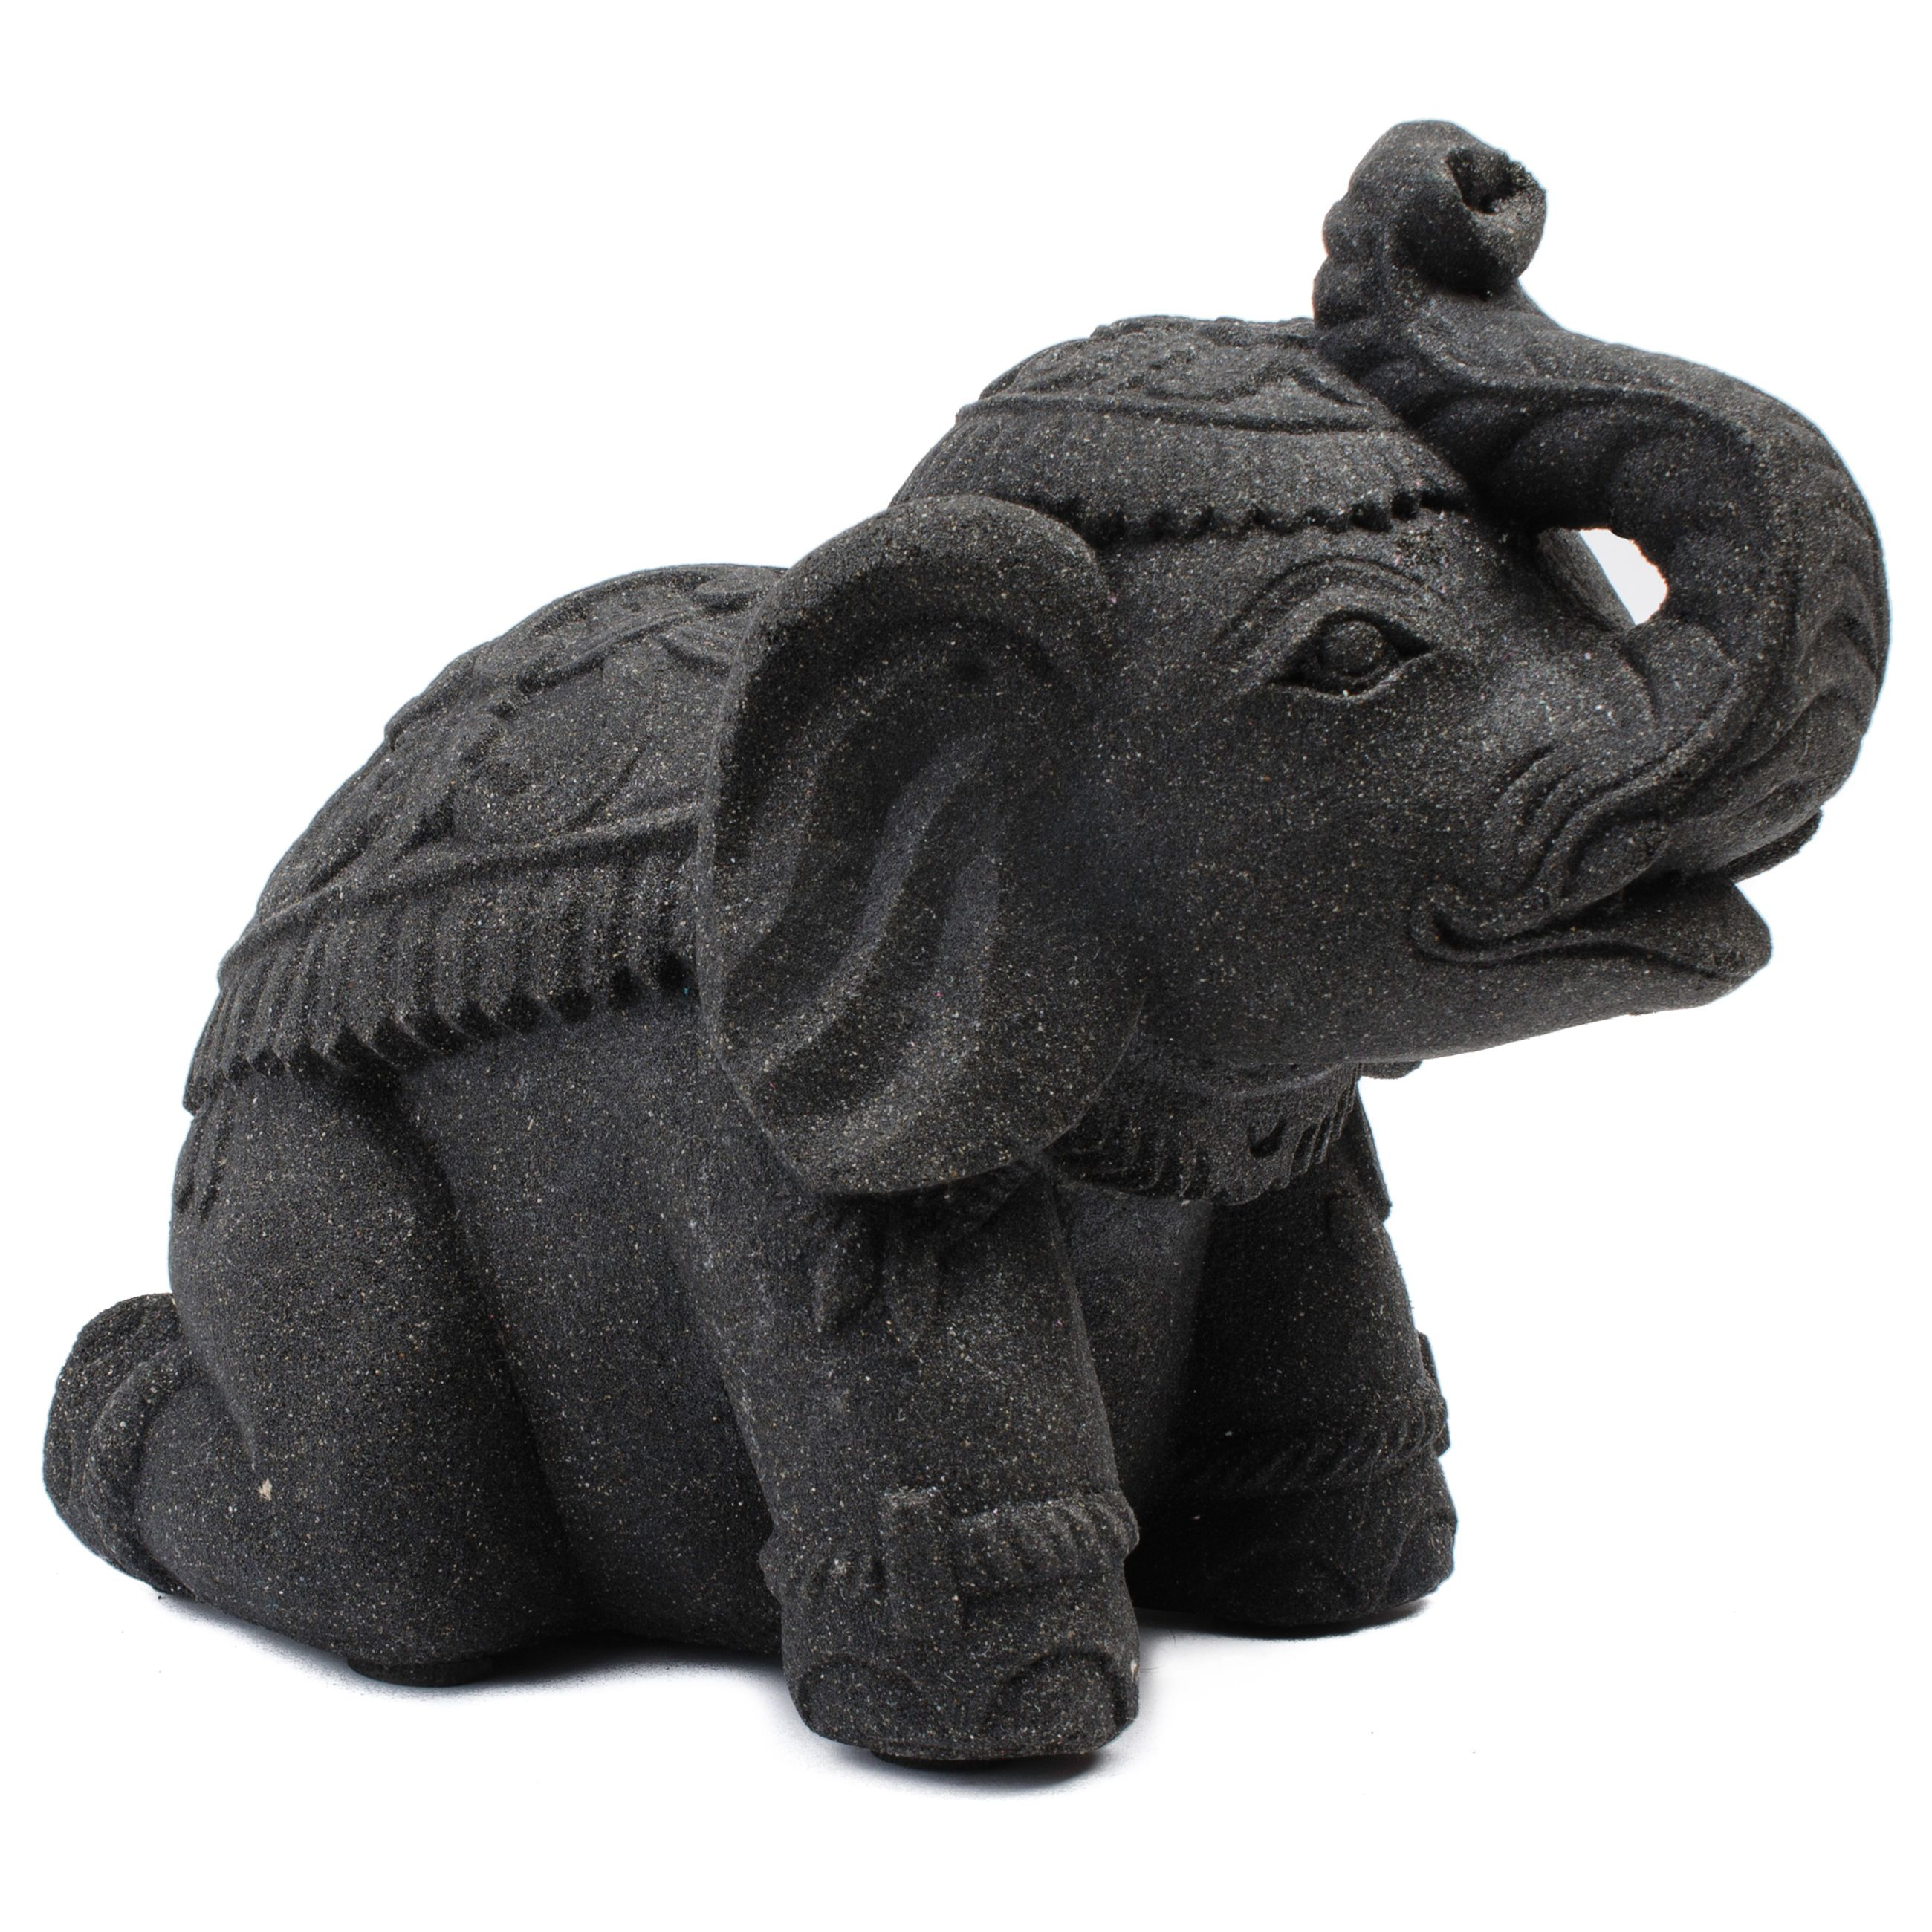 Small Stone Elephant Statuette, Handmade In Indonesia